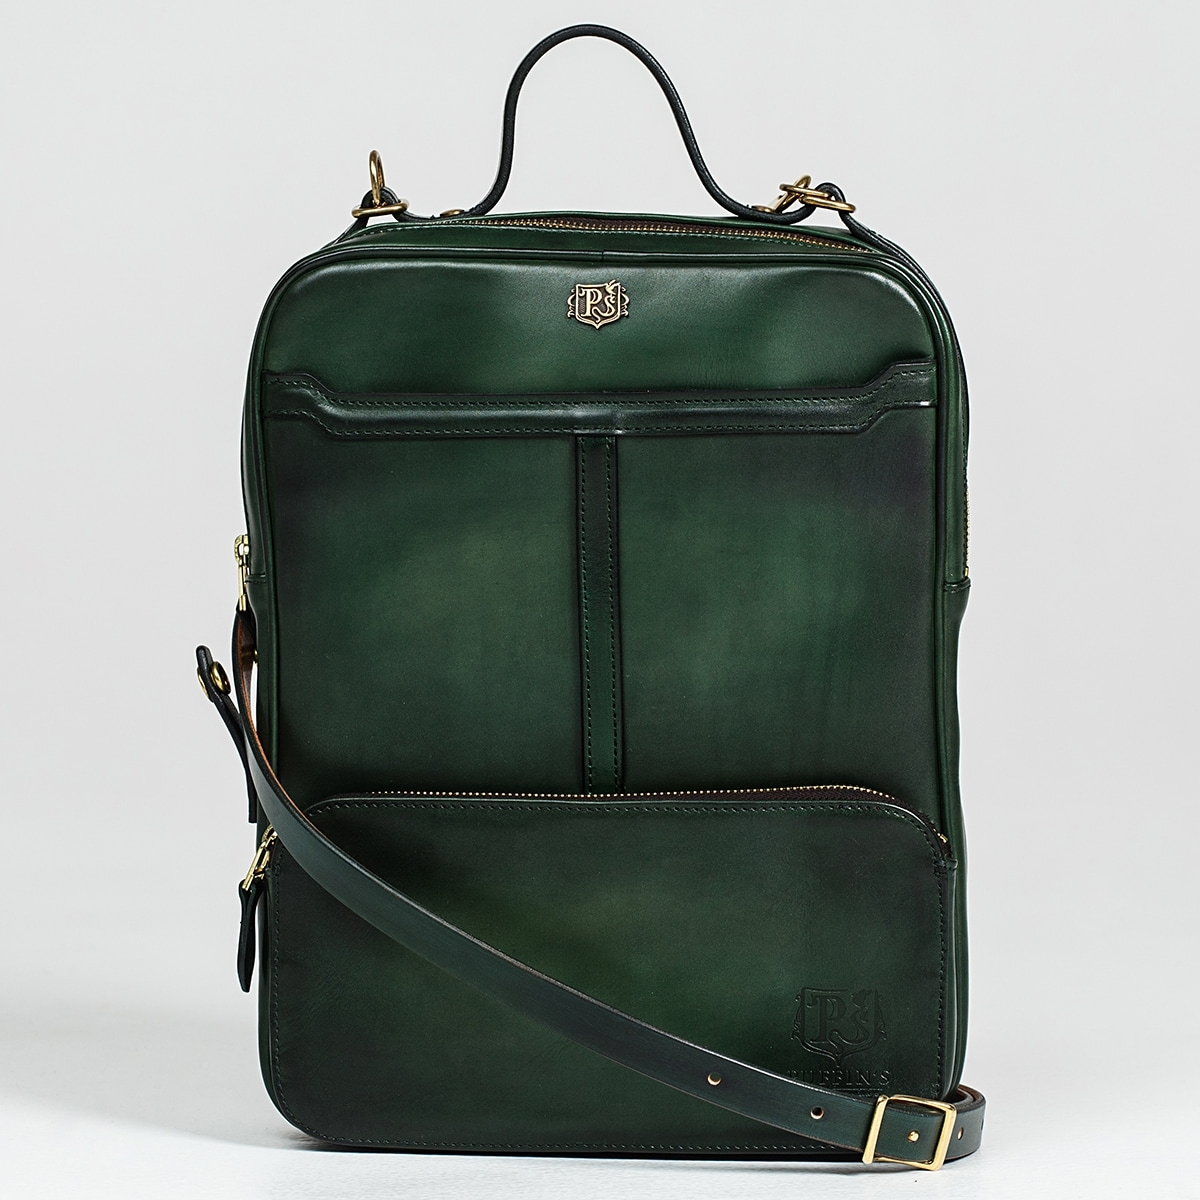 Crossbody bag-transformer CHELSEA grassy green